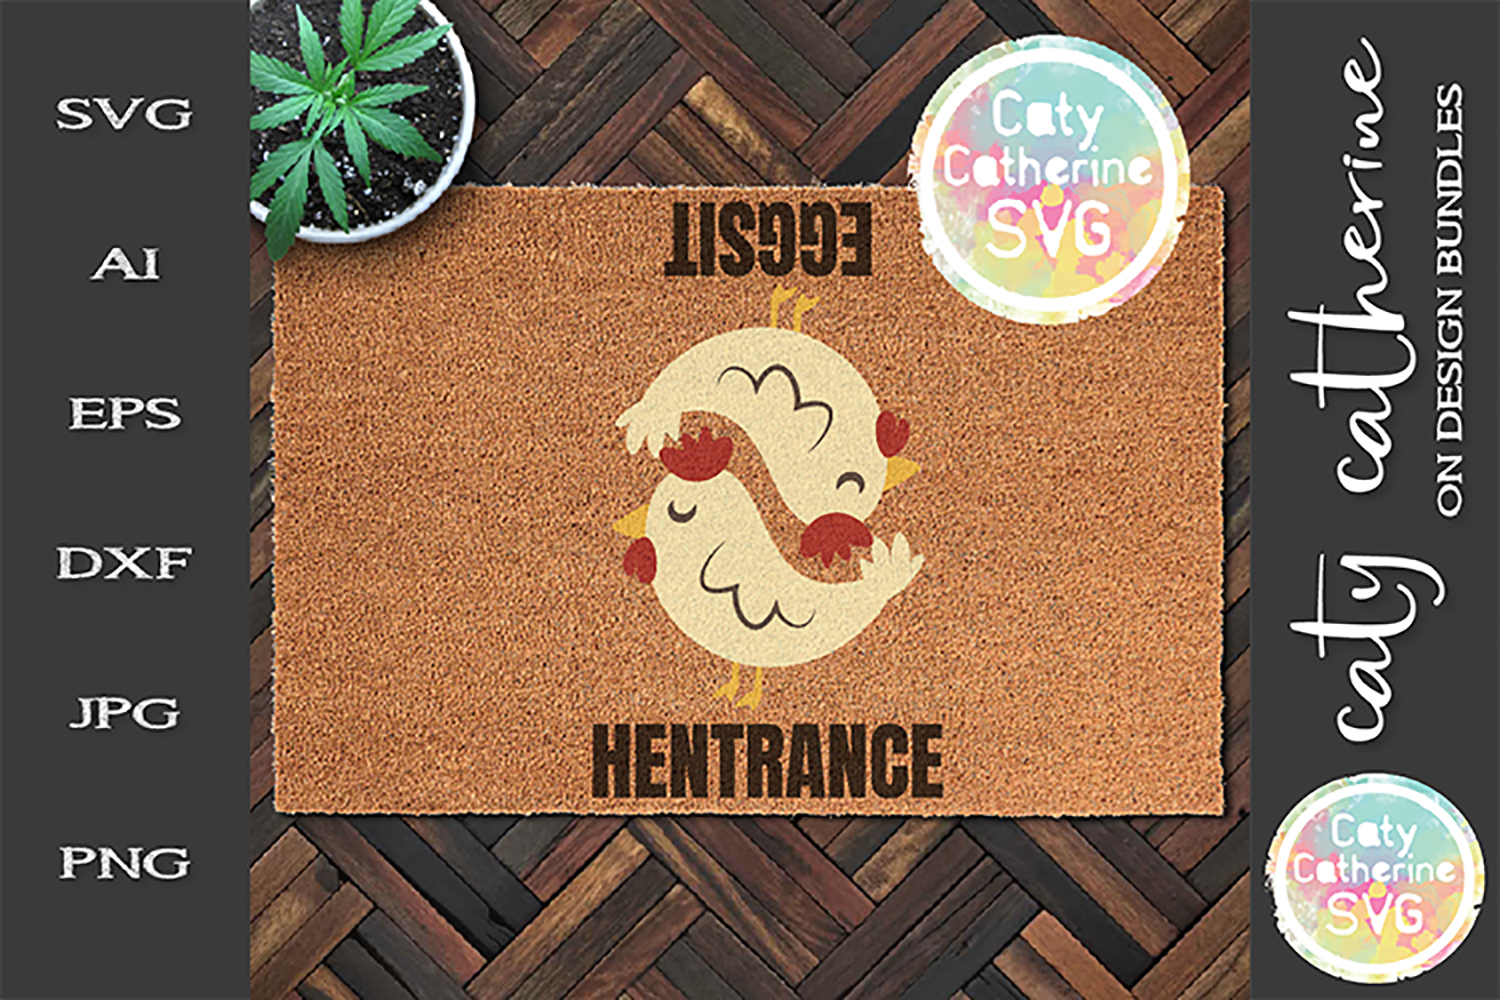 Chicken Welcome Mat Hentrance Eggsit Entrance Exit SVG example image 1